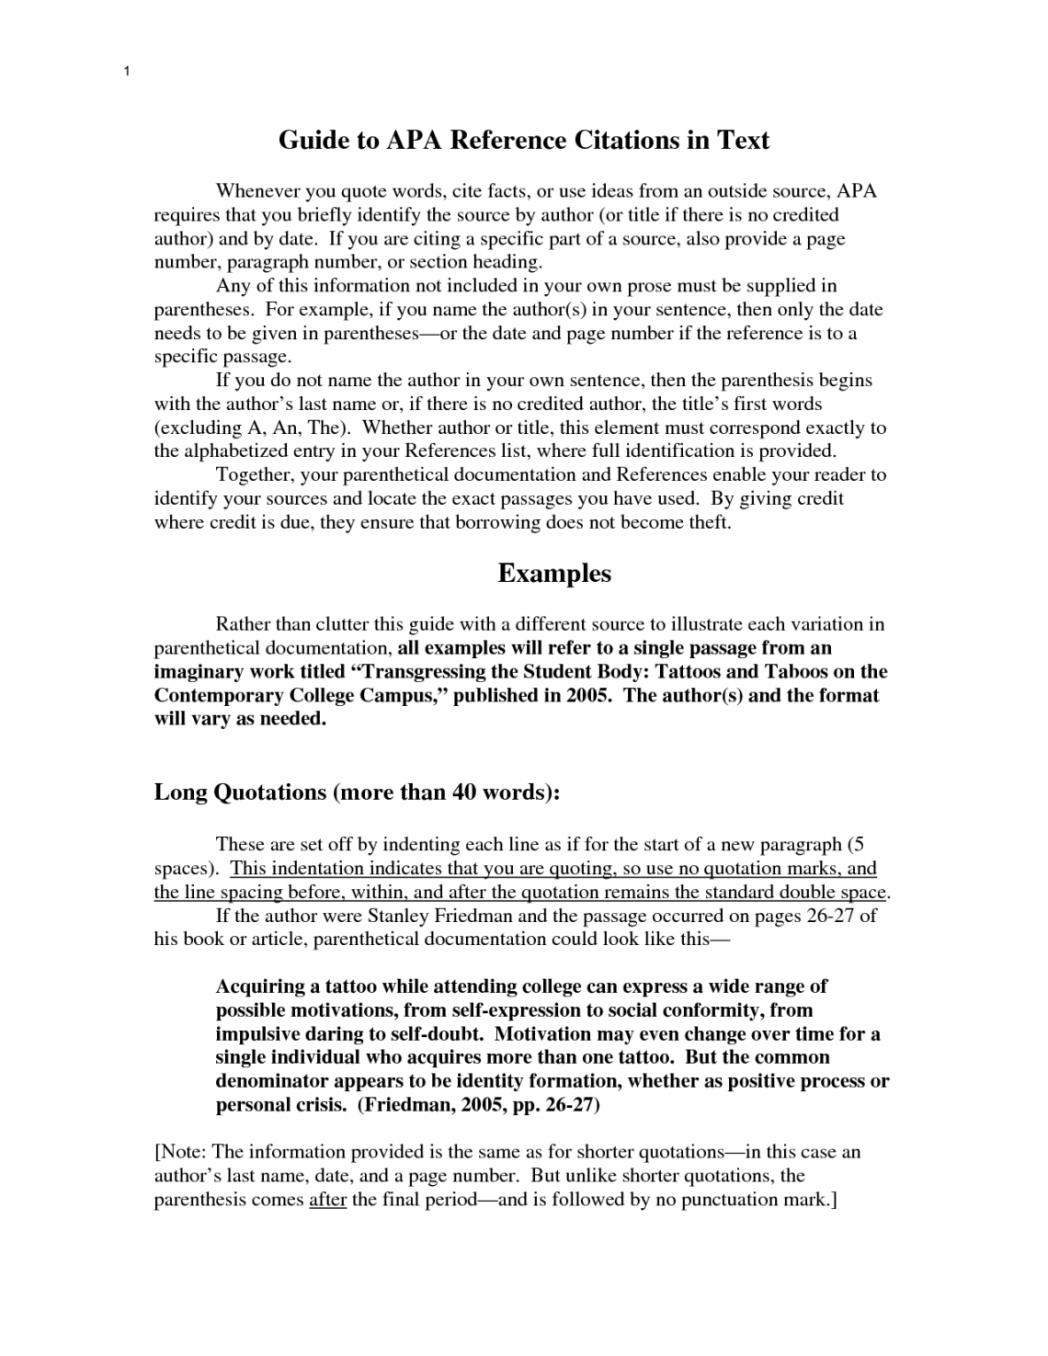 013 Using Quotes In An Essay Format Quotation Starting With Quote Beginning Explanatory Sample 1048x1356 Sensational Examples Partial From A Website Full